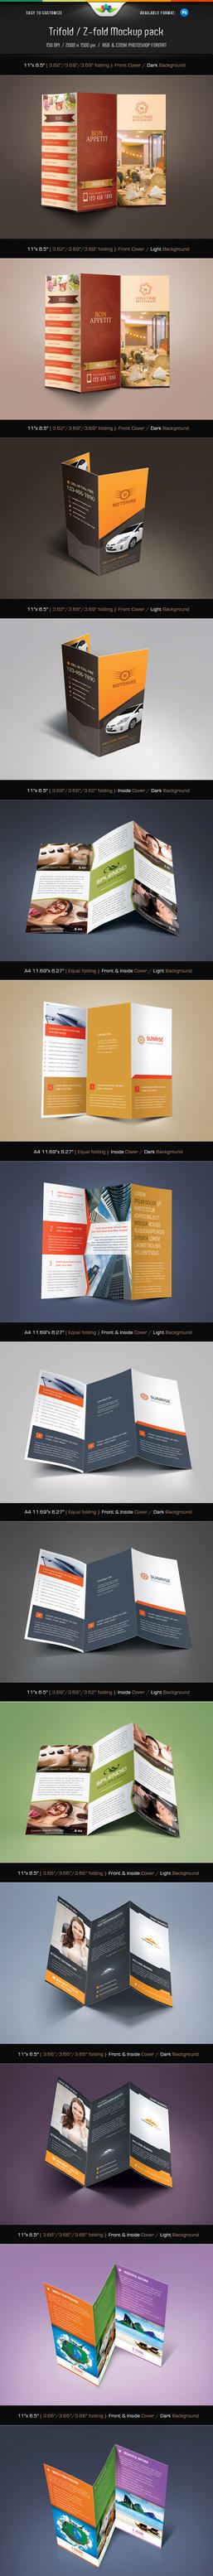 Trifold And Z-fold Mockup Pack by Saptarang